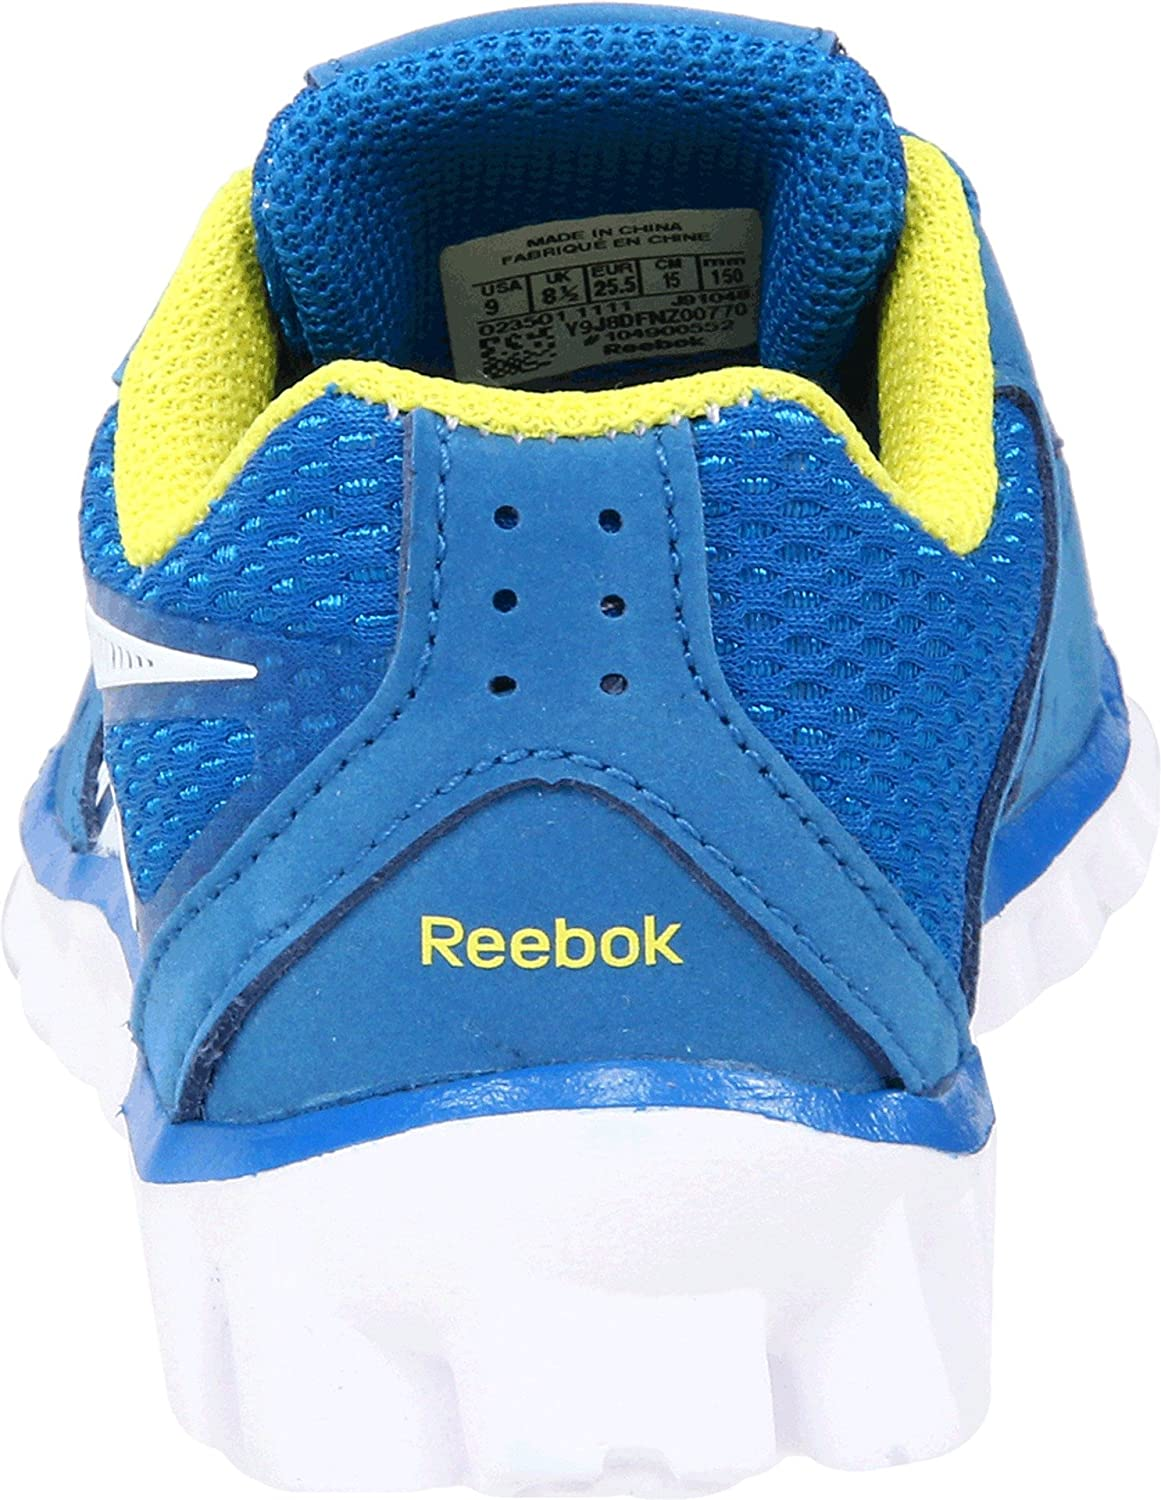 reebok realflex transition